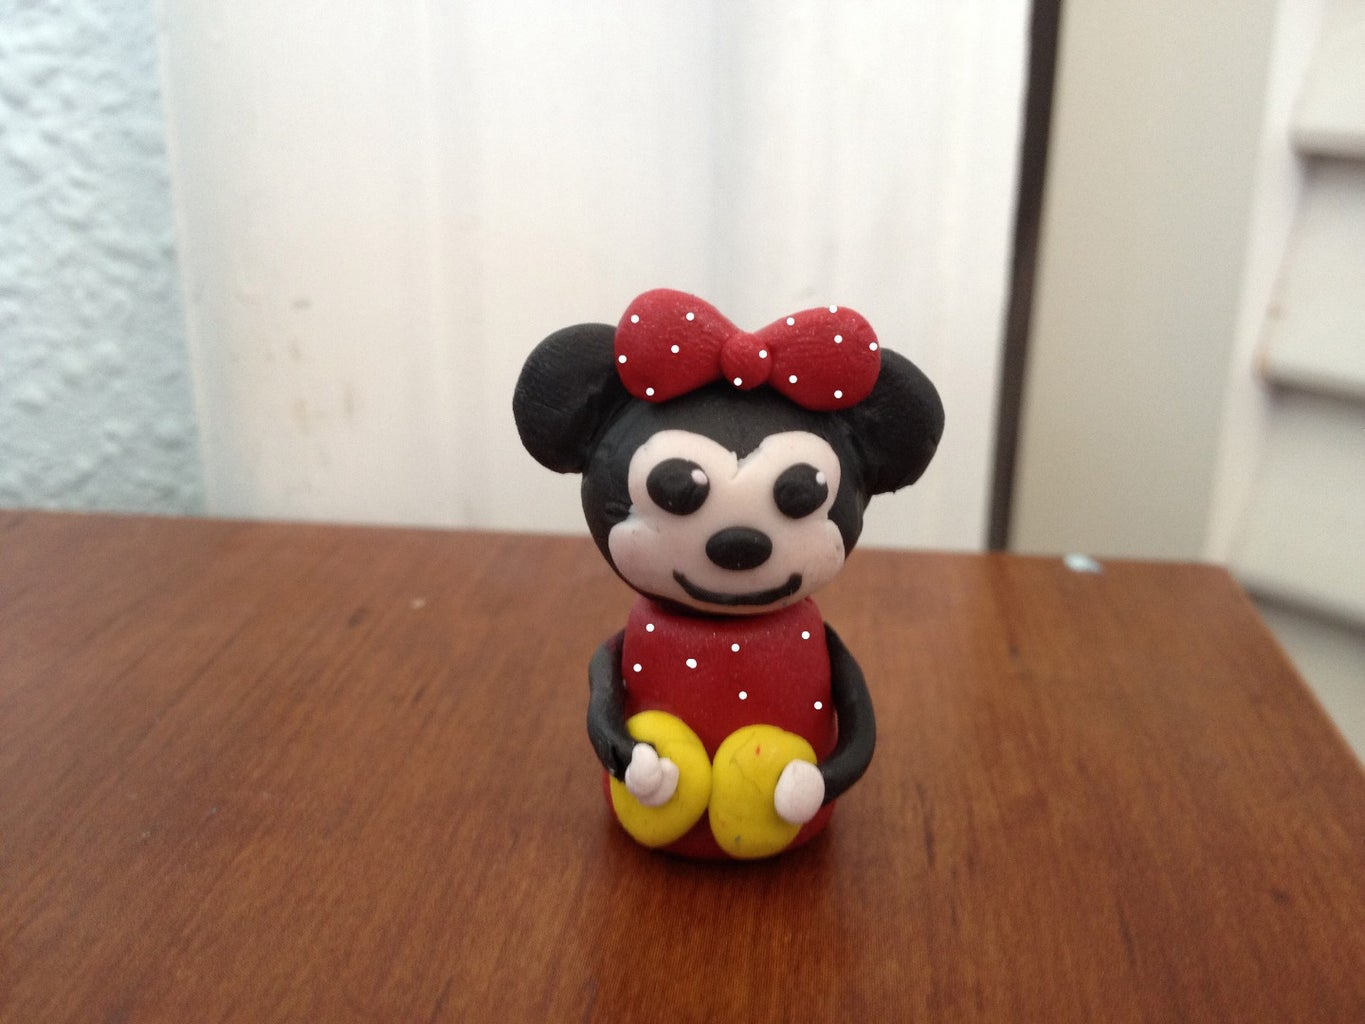 How to Make a Minnie Mouse Out of Polymer Clay